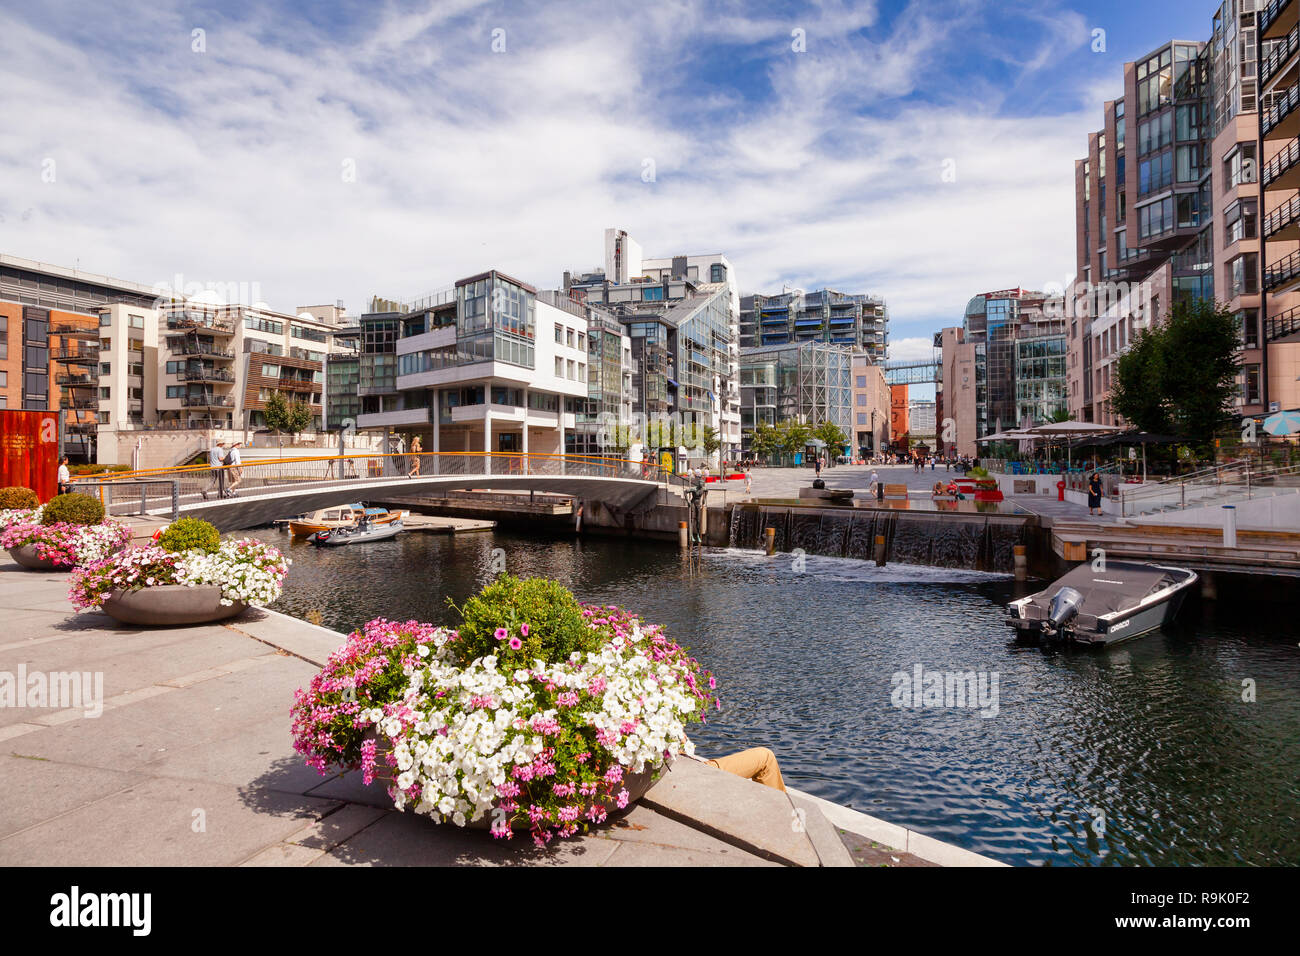 OSLO, NORWAY - JULY 23, 2018: Modern scandinavian architecture at renovated Aker Brygge neighbourhood, part of the Fjord City urban renewal project in - Stock Image